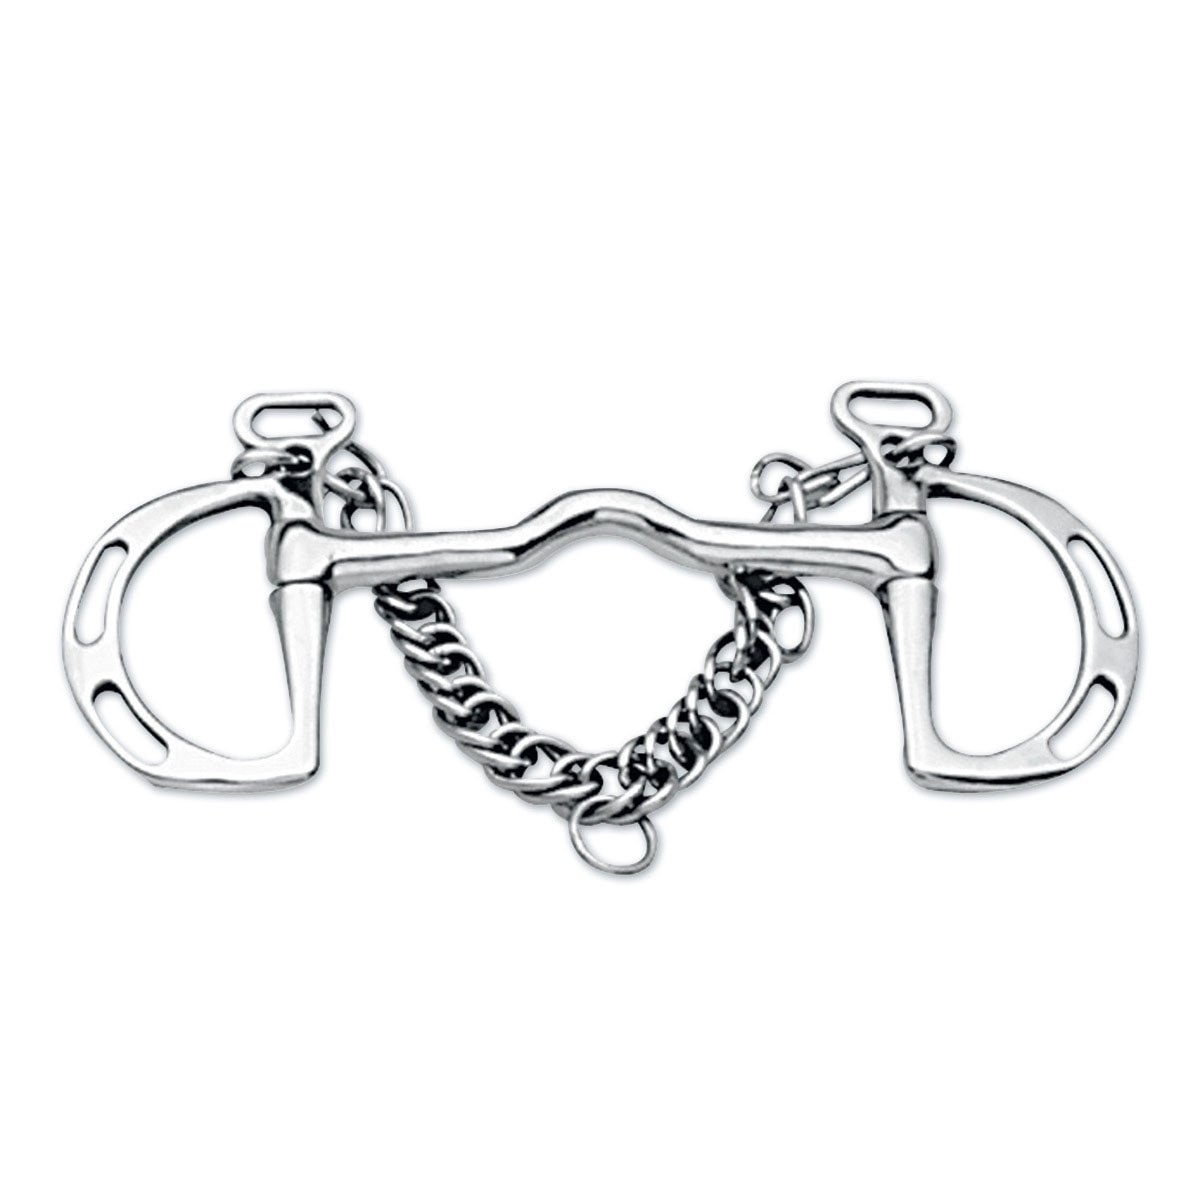 """NEW SHOWMAN KIMBERWICKE UXETER STAINLESS SNAFFLE BIT WITH CHAIN FREE SHIP! 5/"""""""